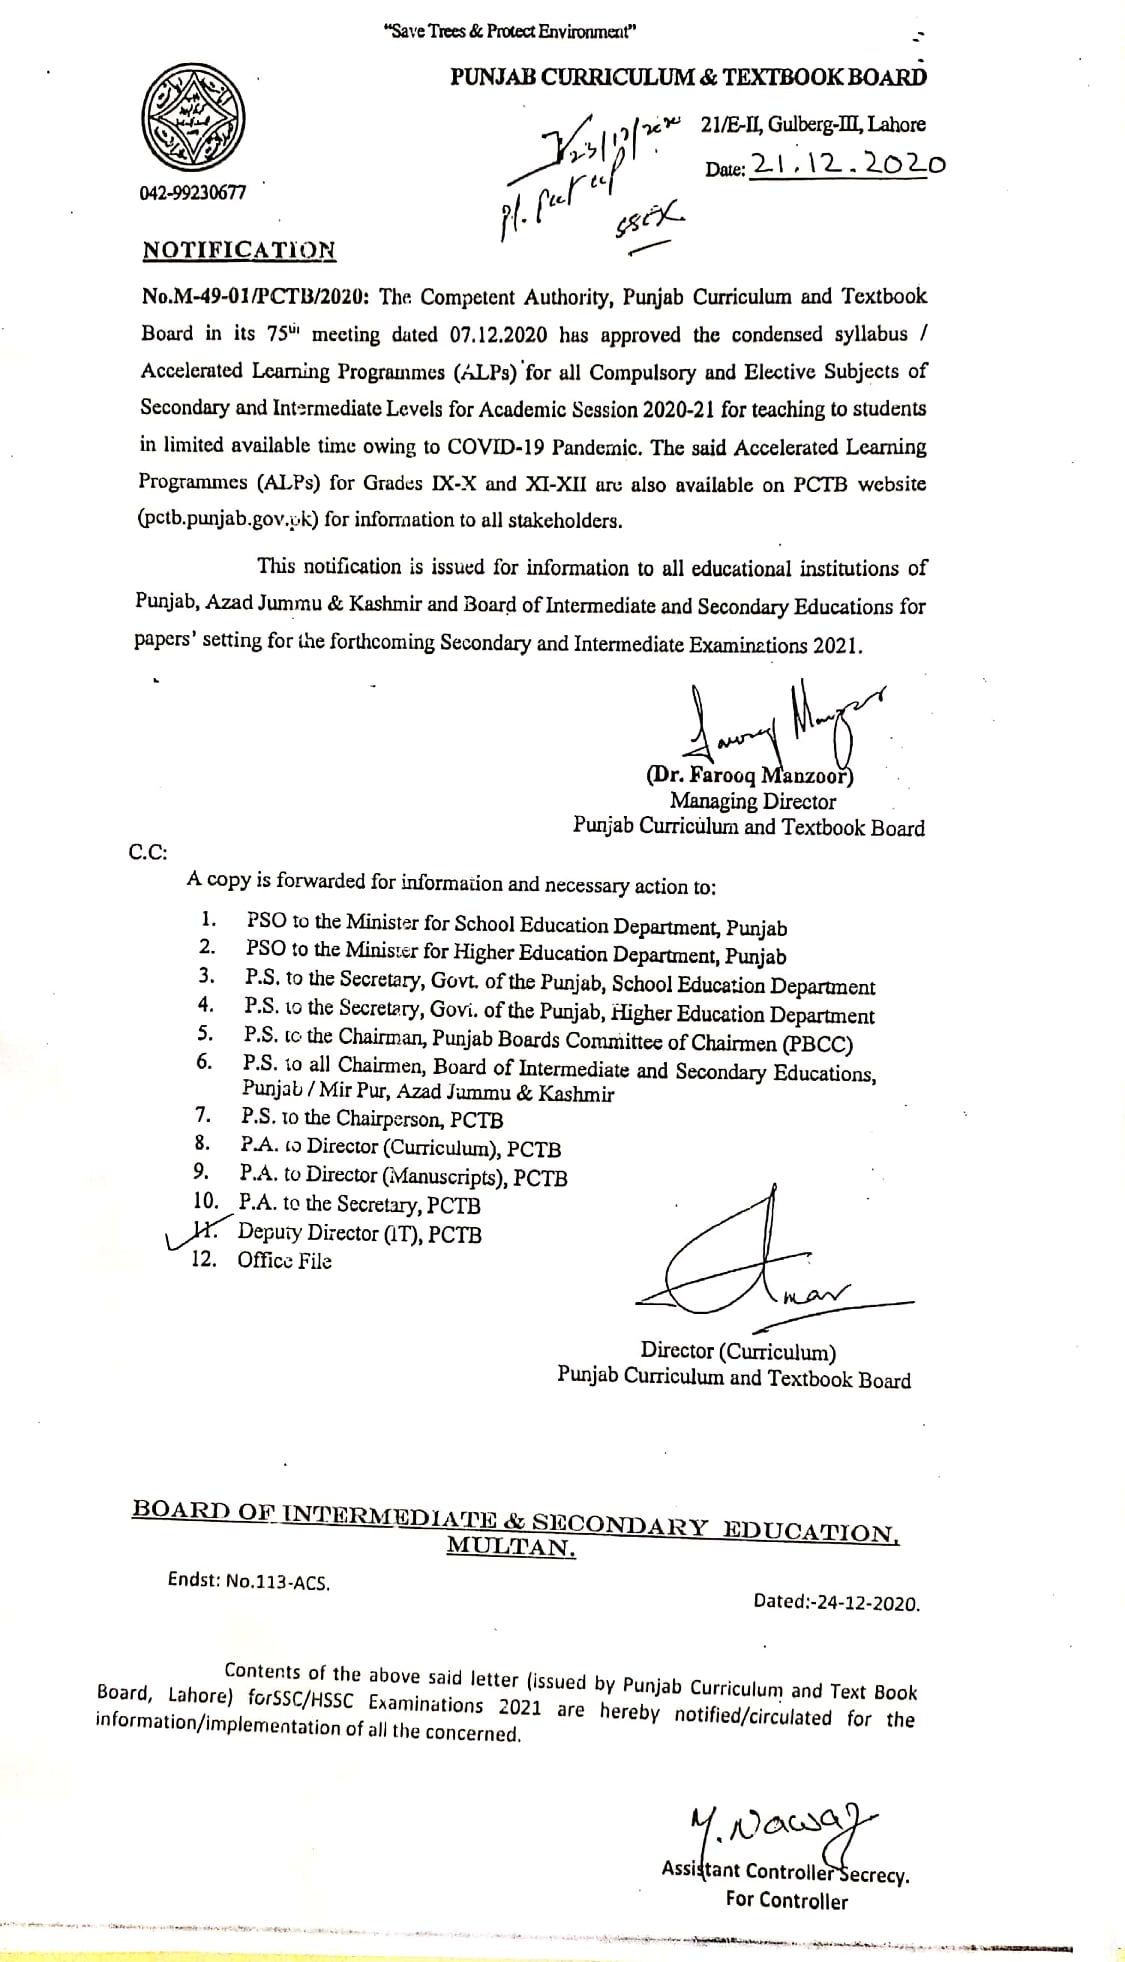 Condensed Syllabus BISE Multan Elective Subjects 9th, 10th, 11th & 12th Class